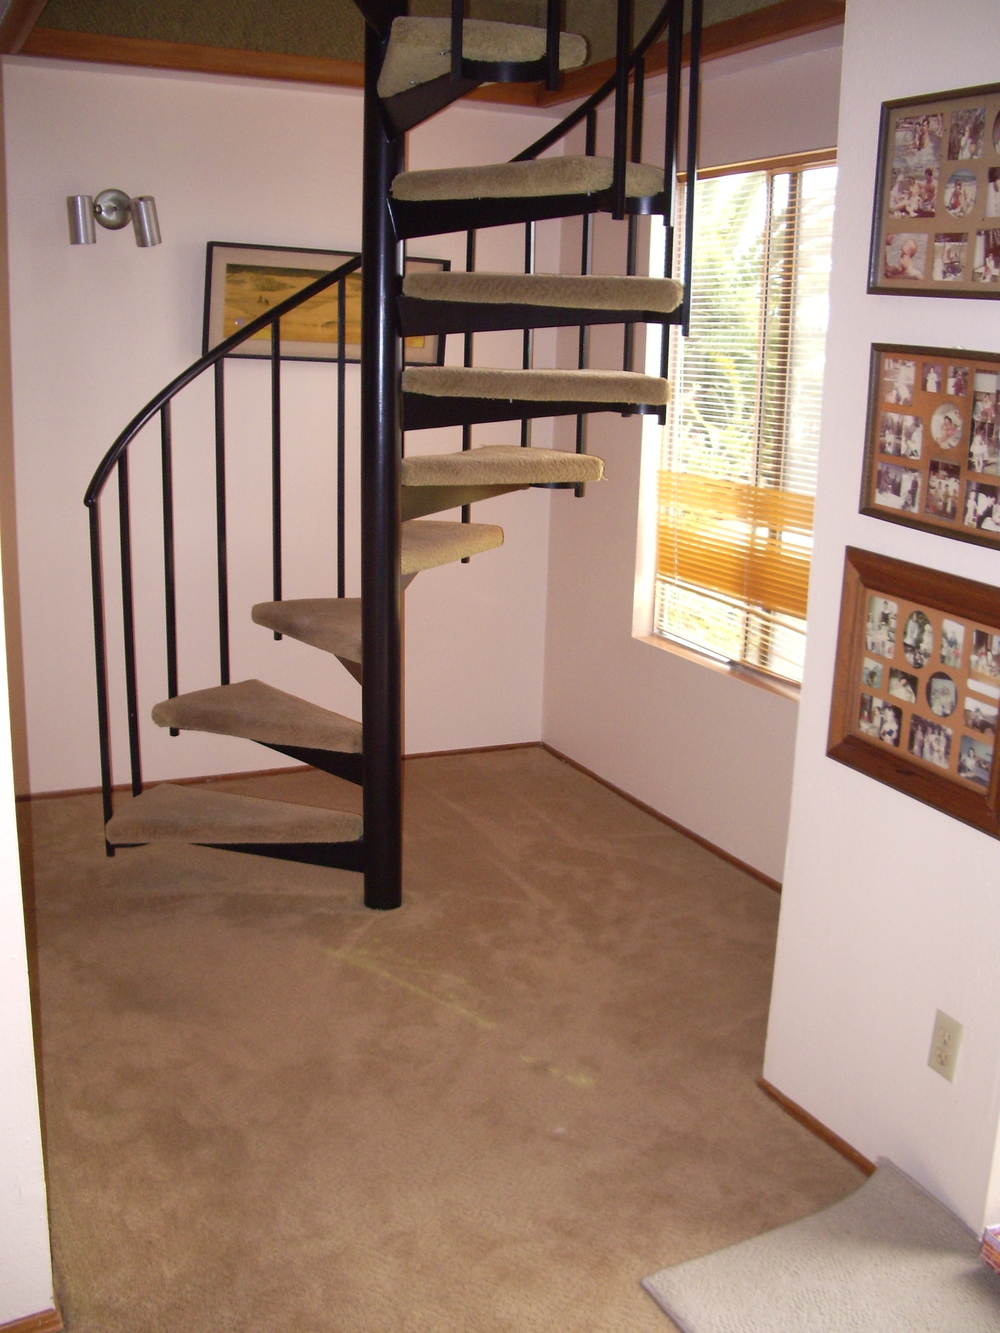 Before: Carpeted floors and stairs.